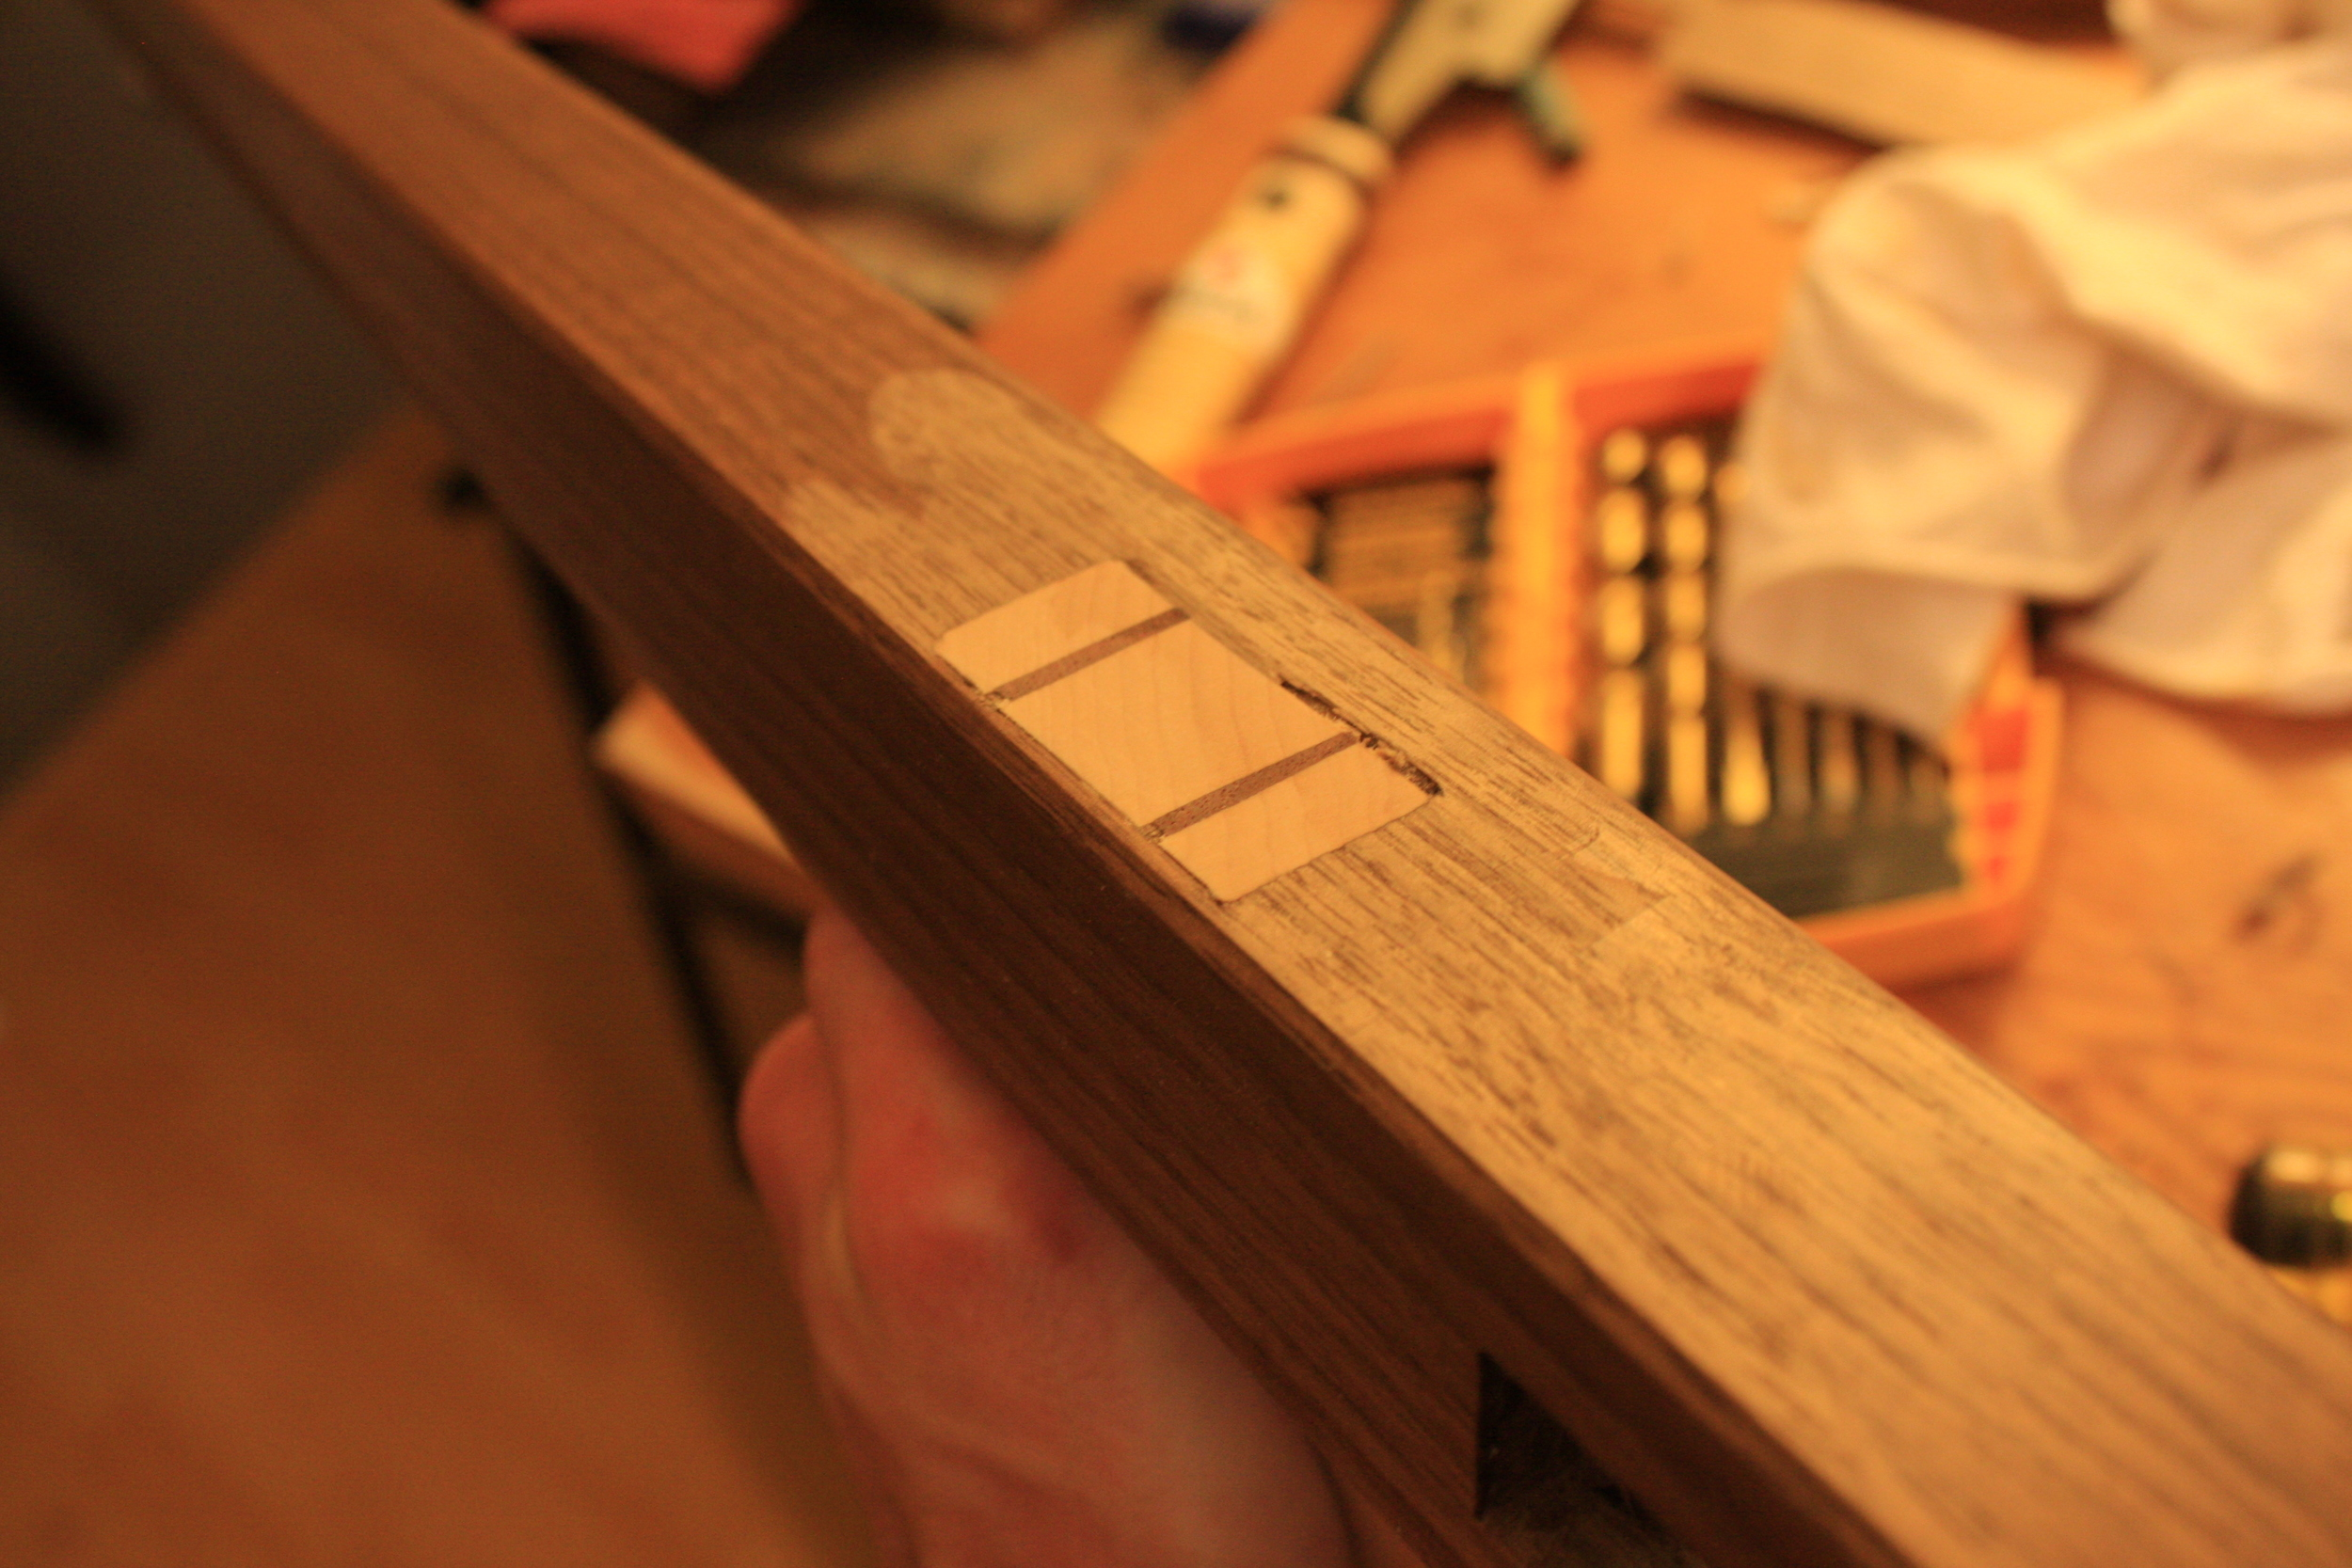 Post gluing and planing wedged joint. The little bit of damage to the finish was non-trivial but not a big deal in the end.